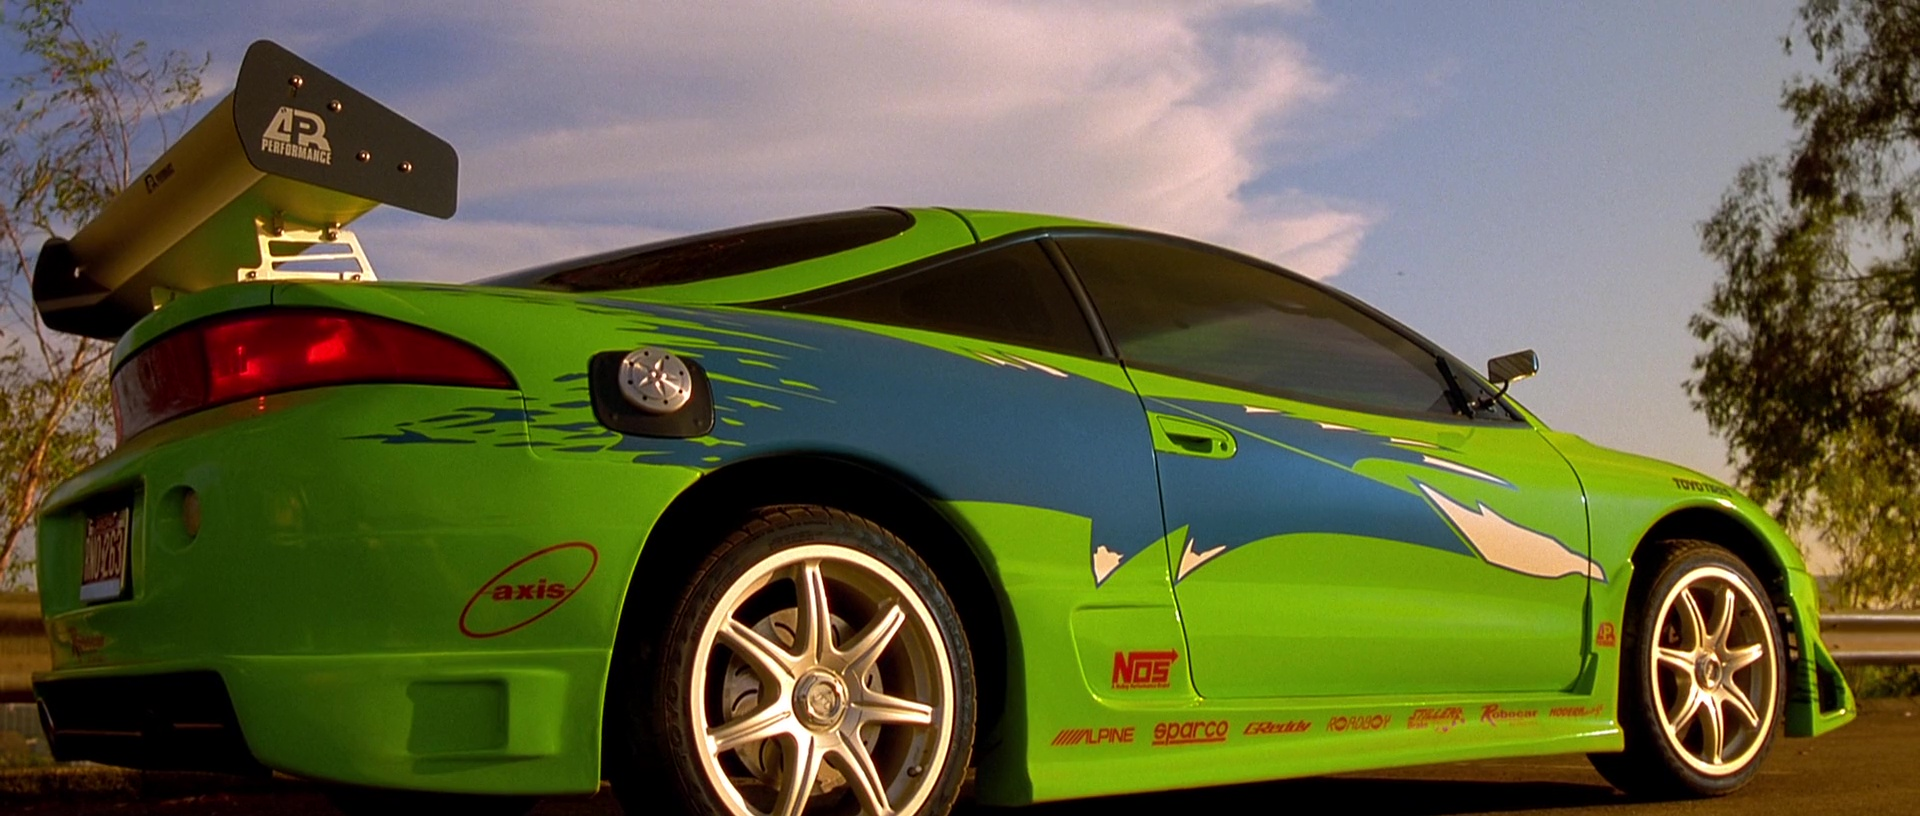 1995 Mitsubishi Eclipse from The Fast and the Furious